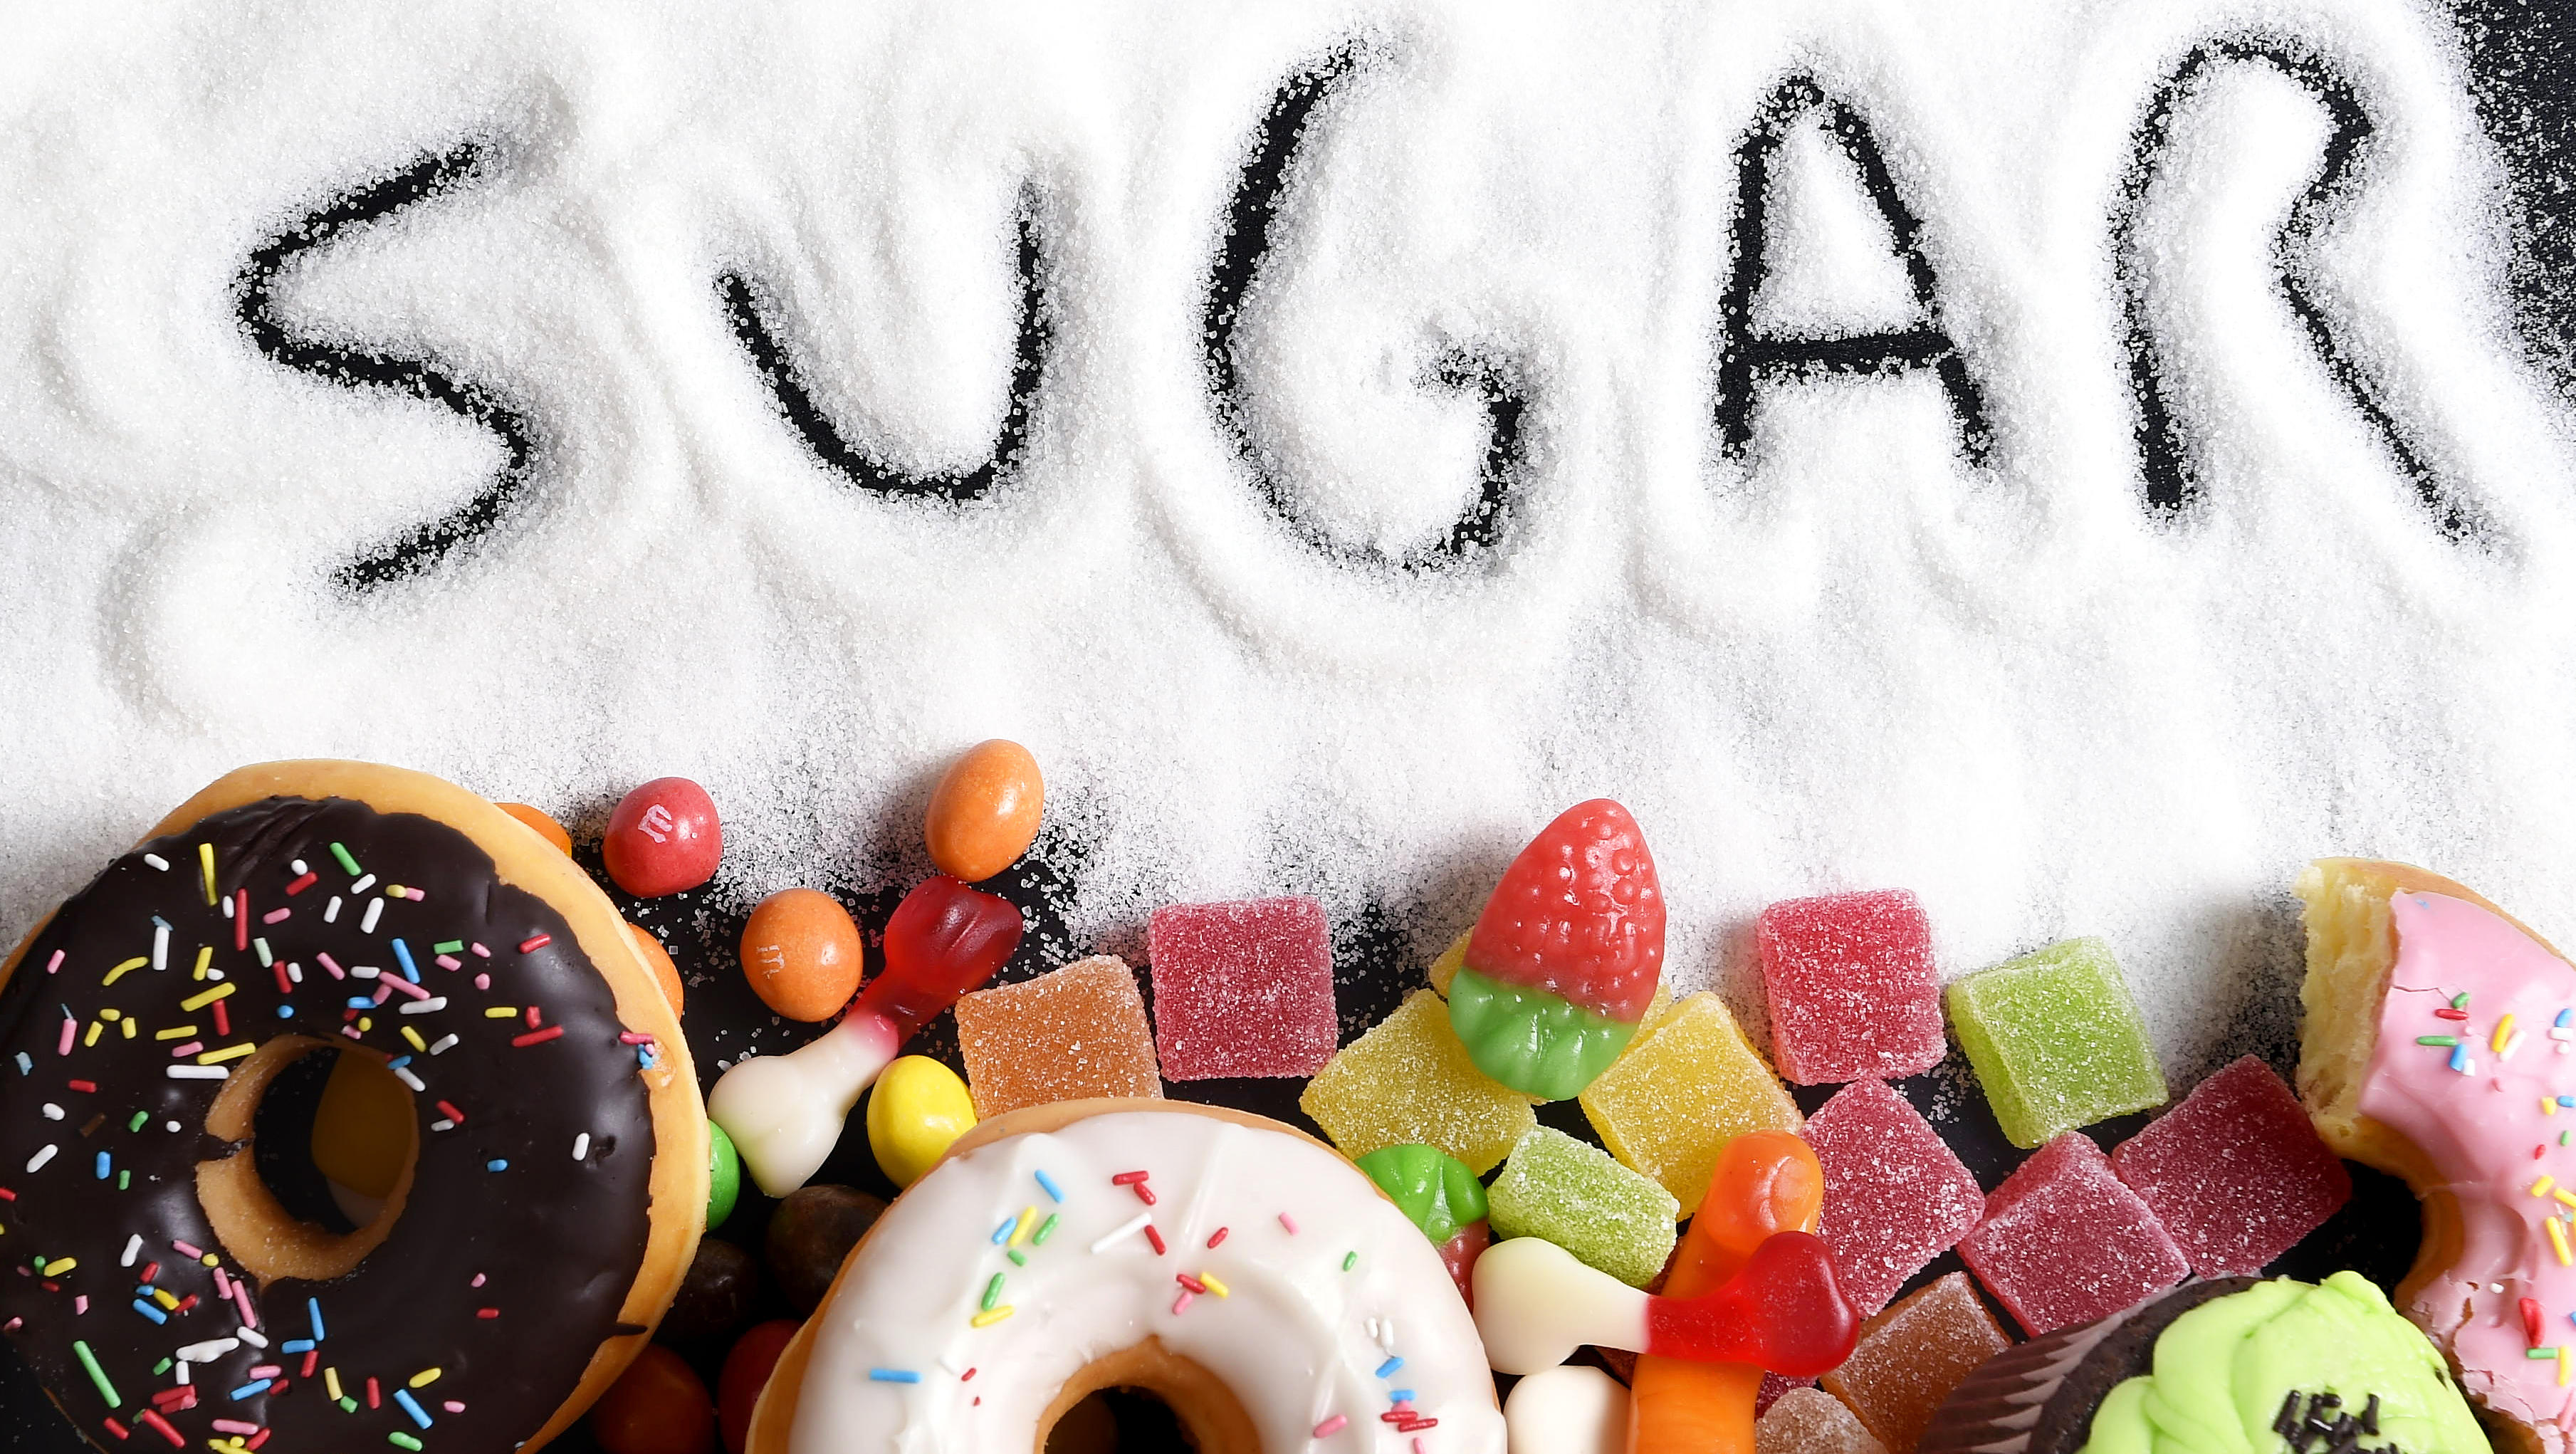 sugar crop - Added sugars ingredient names